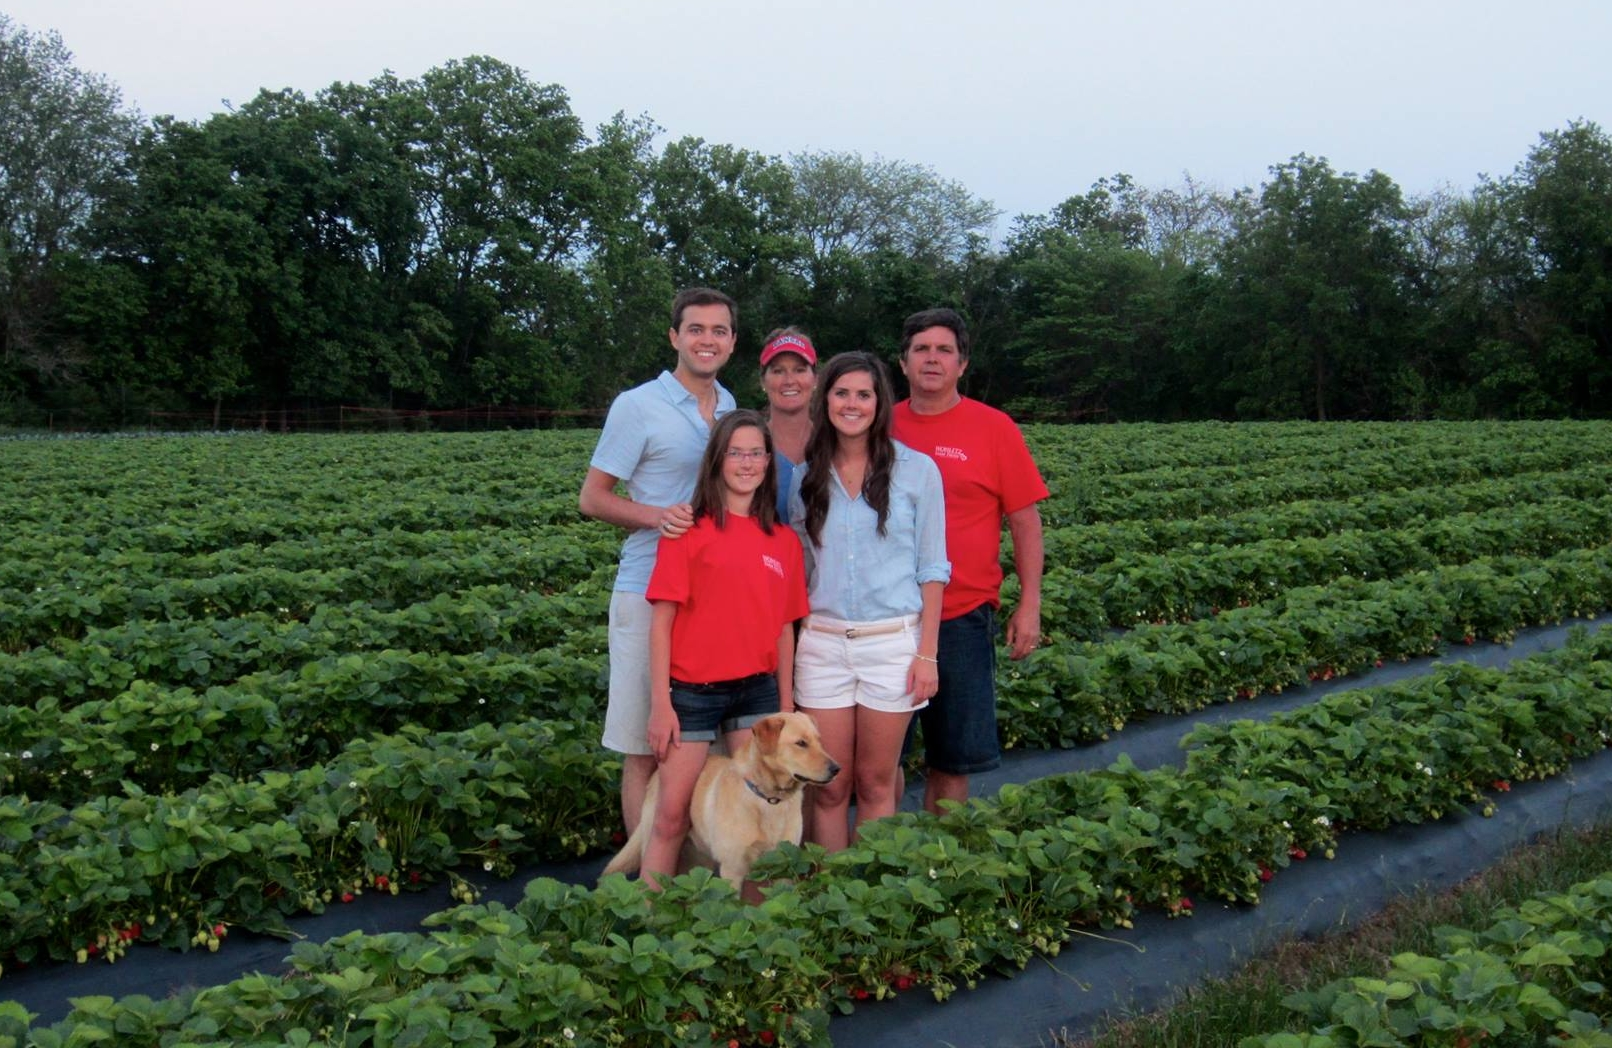 wohletz_family_upick_farm_kansas.jpg